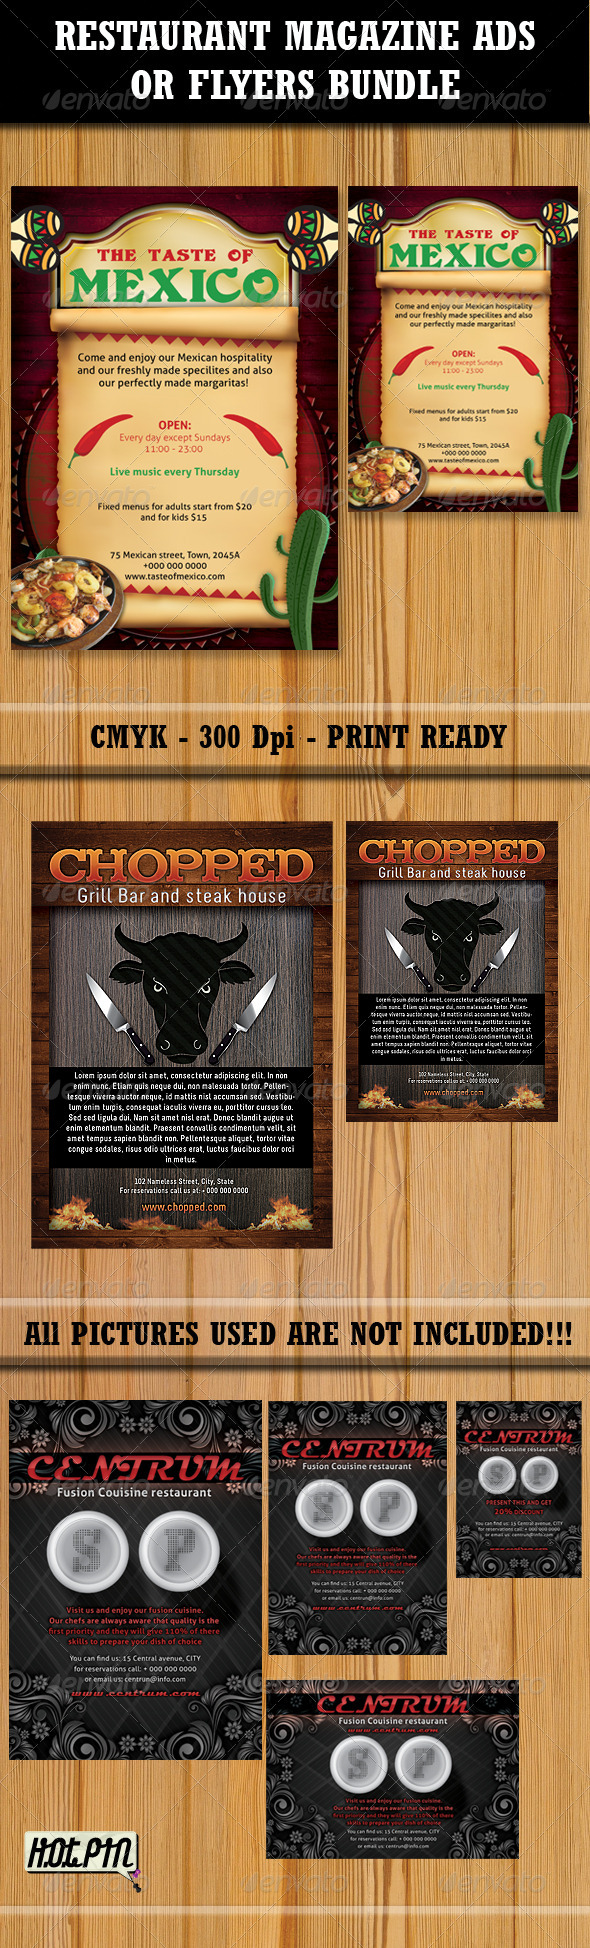 Graphic River Restaurant Magazine Ads-Flyers Bundle 2 Print Templates -  Flyers  Restaurant 459467